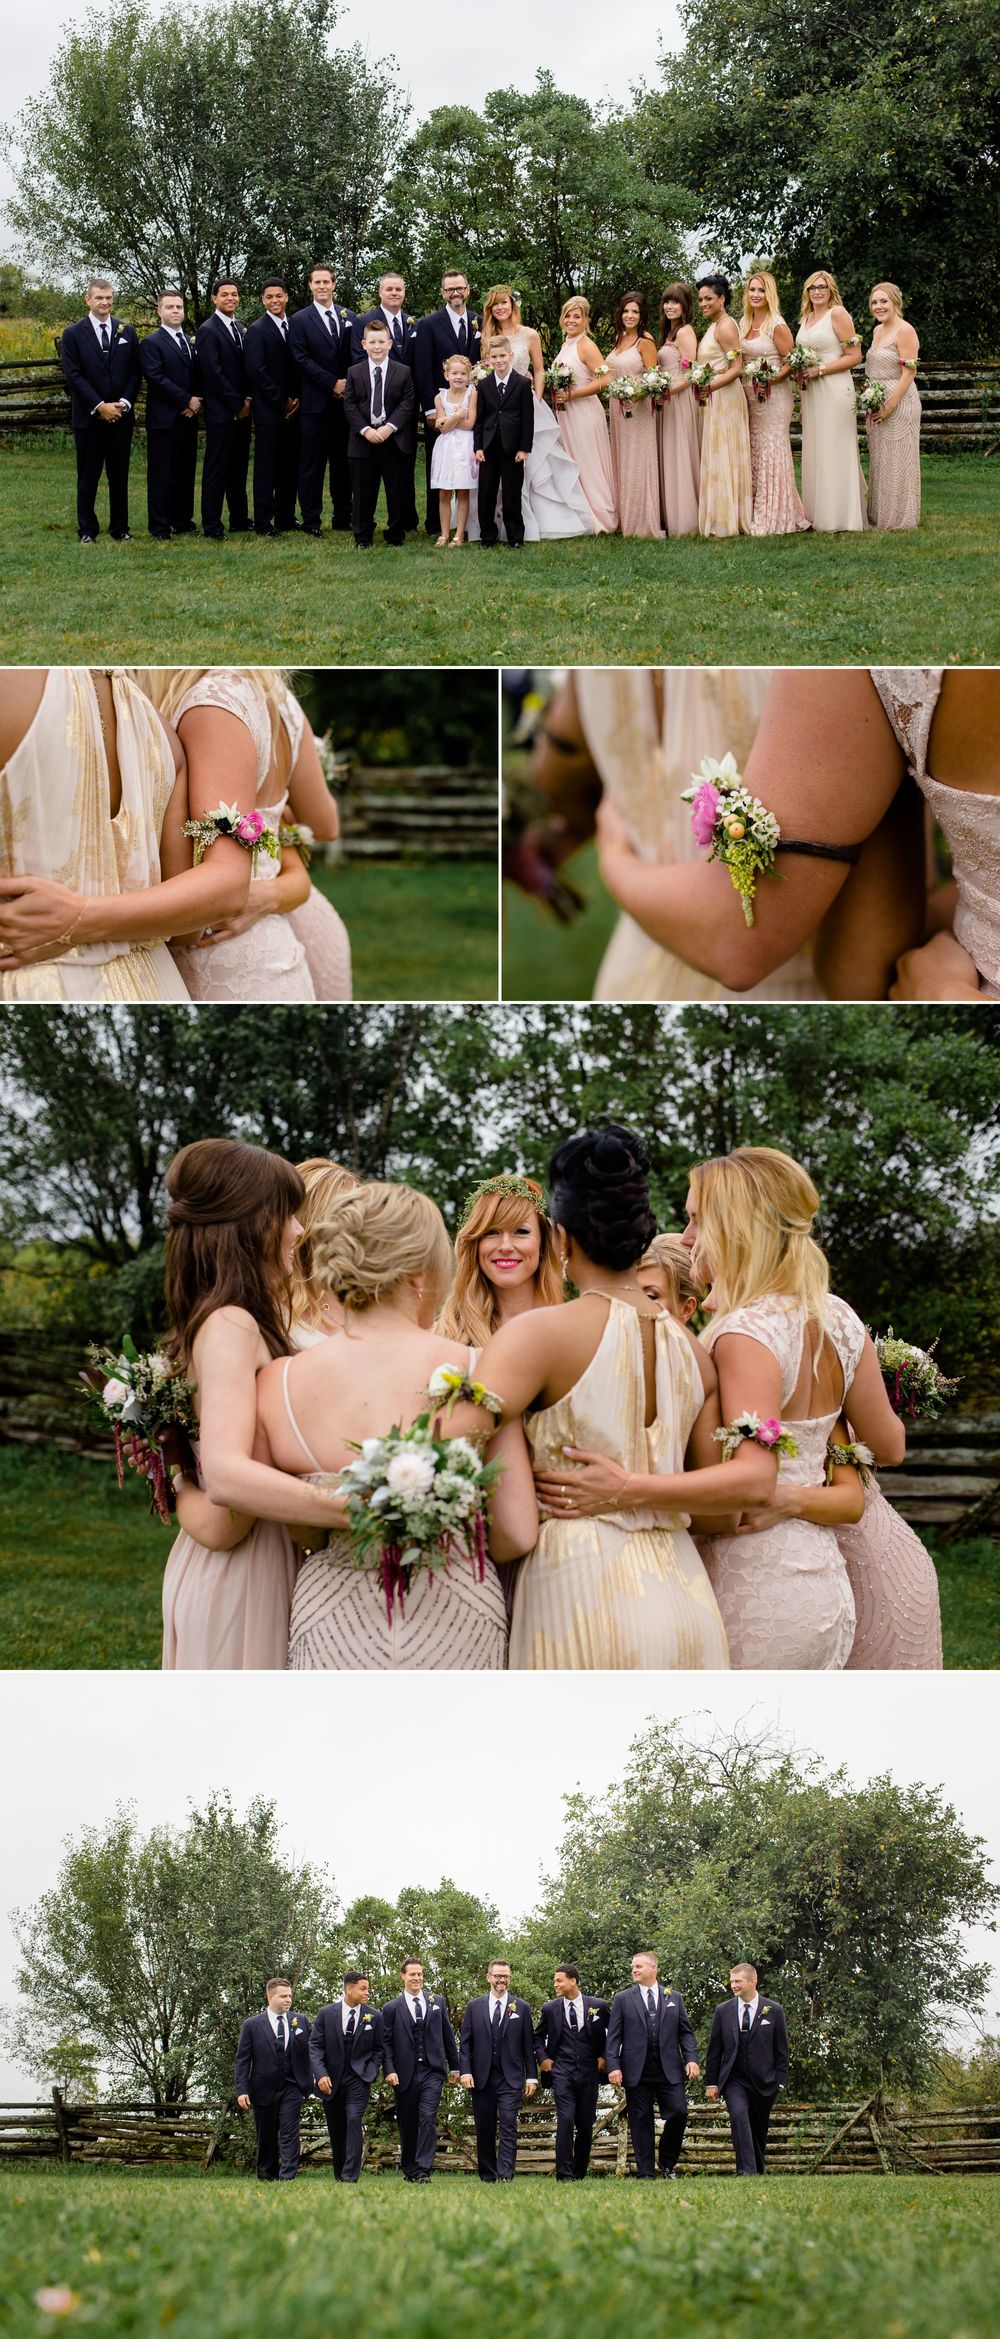 Bridesmaids and groomsmen images